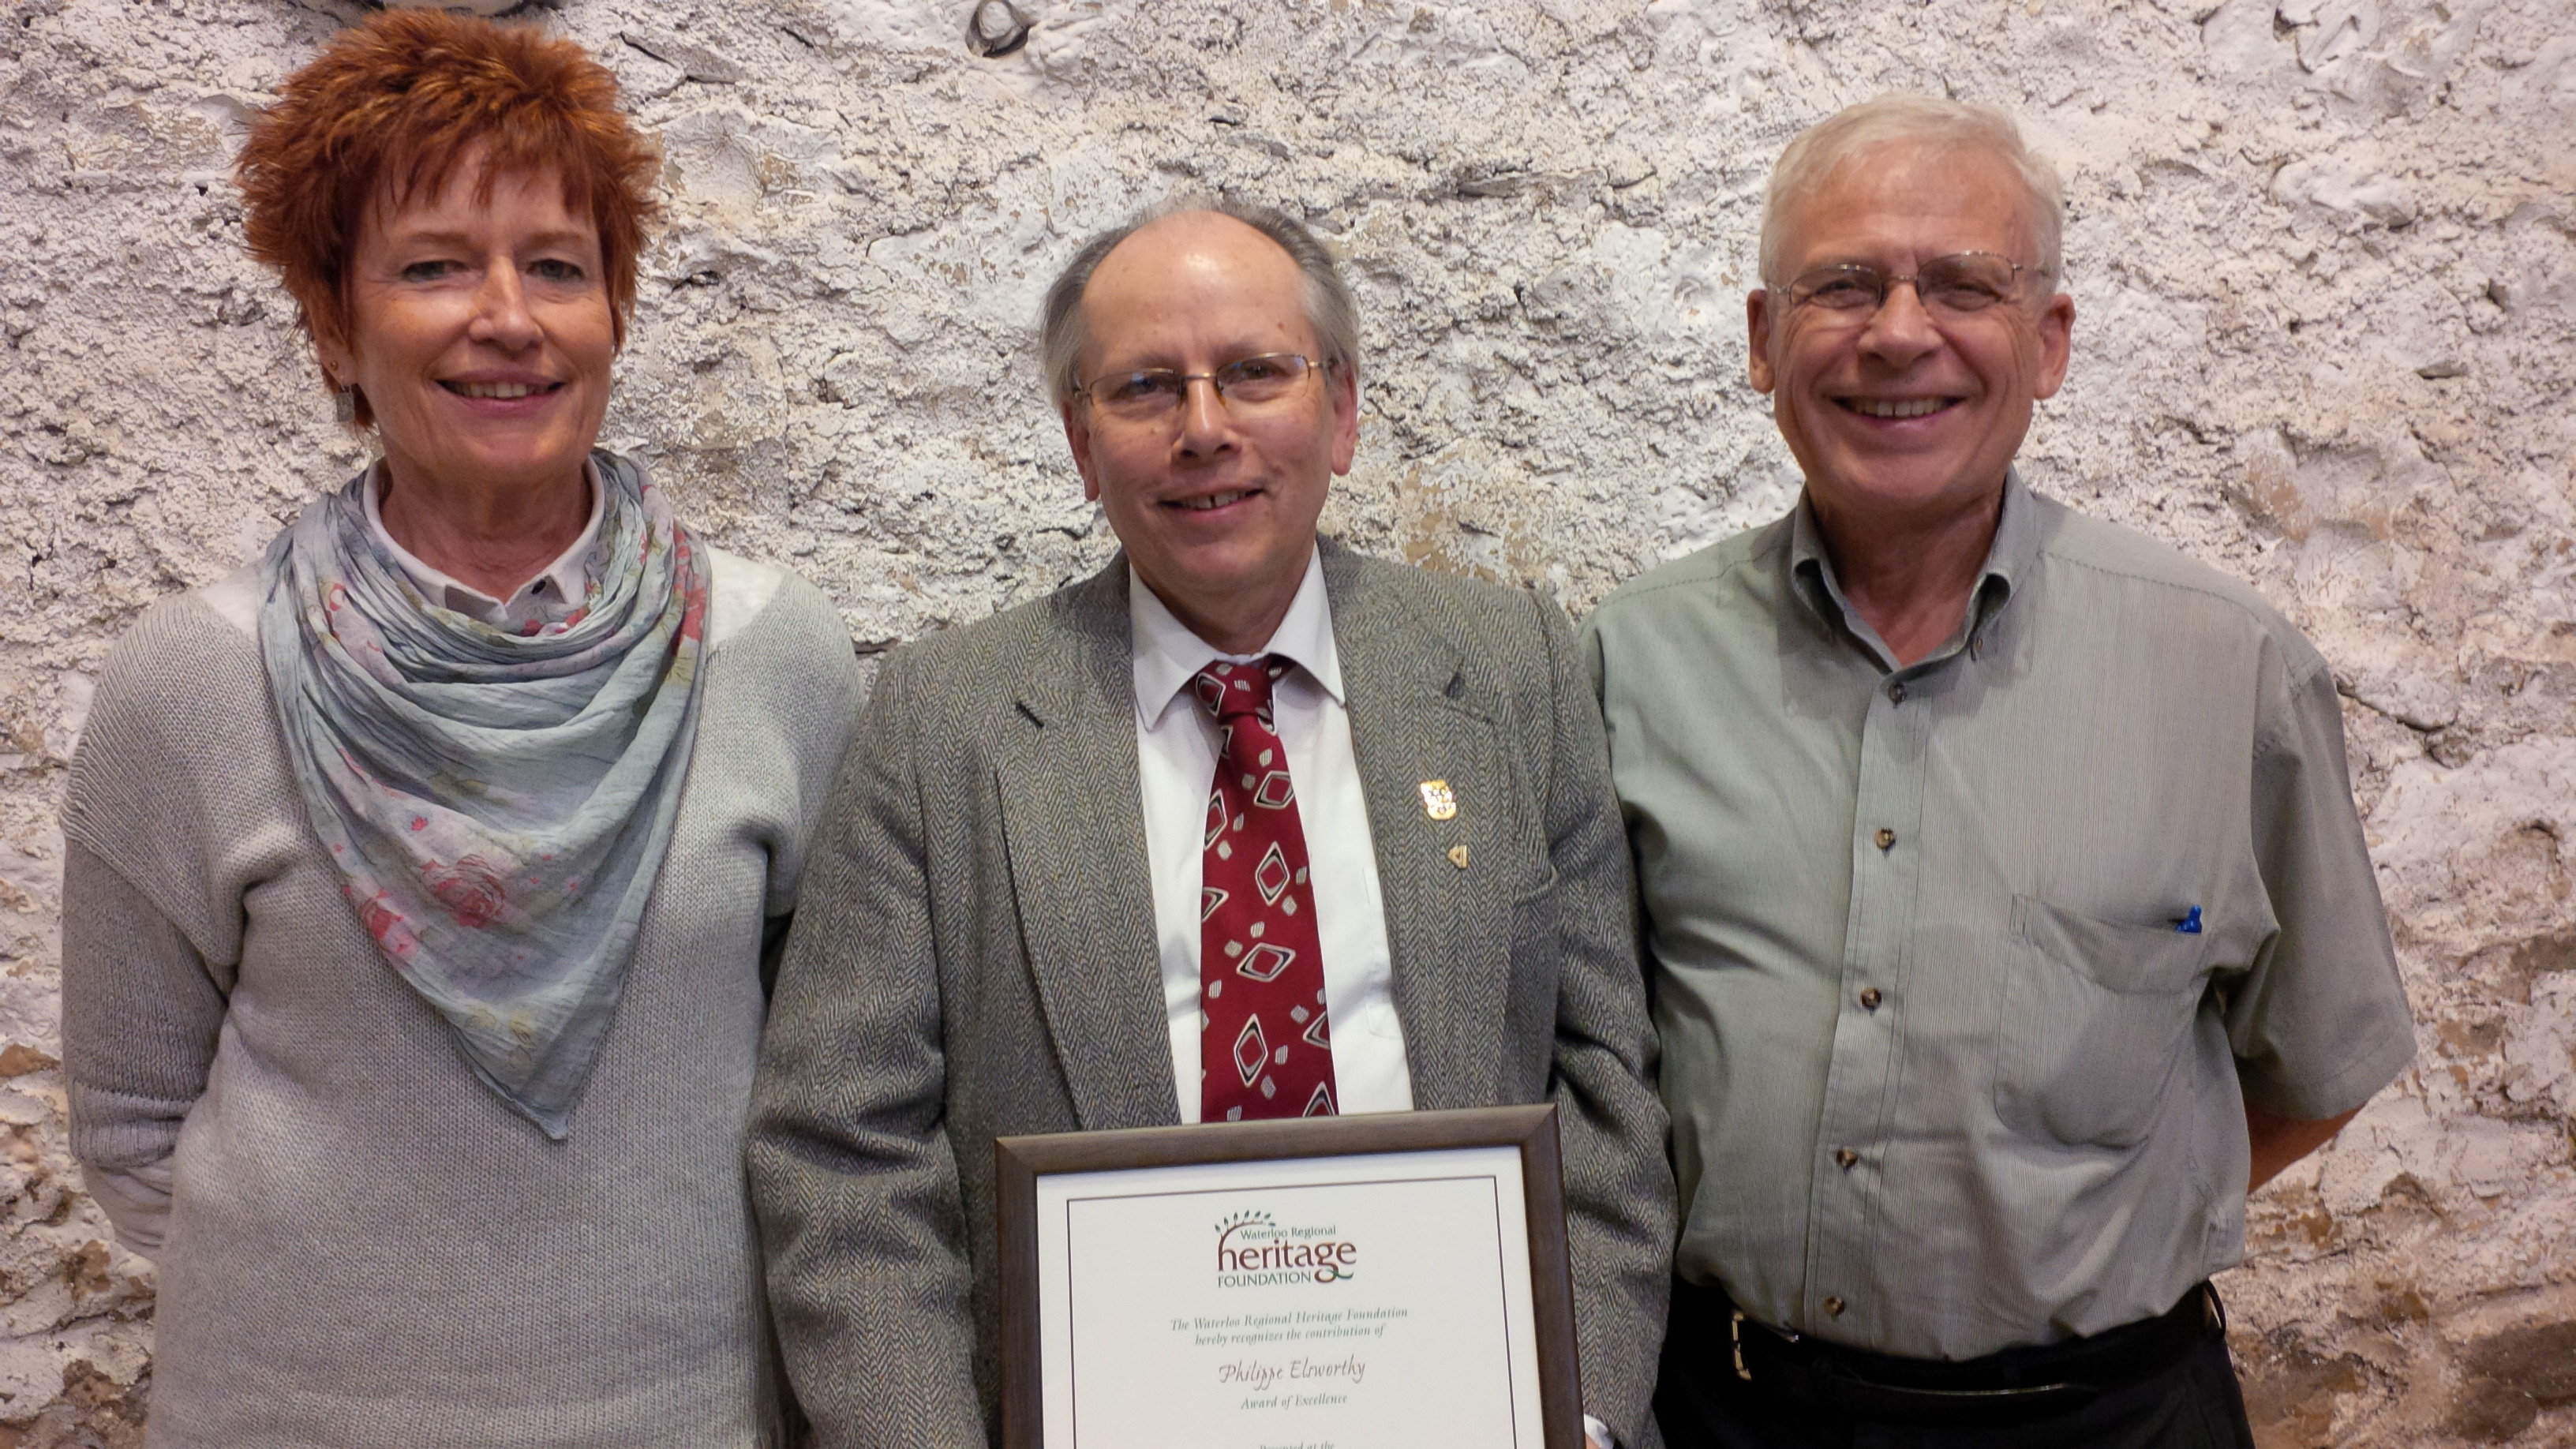 Phil with his Waterloo Regional Heritage Foundation Award, standing between his award nominators, Susan Burke and John Arndt.